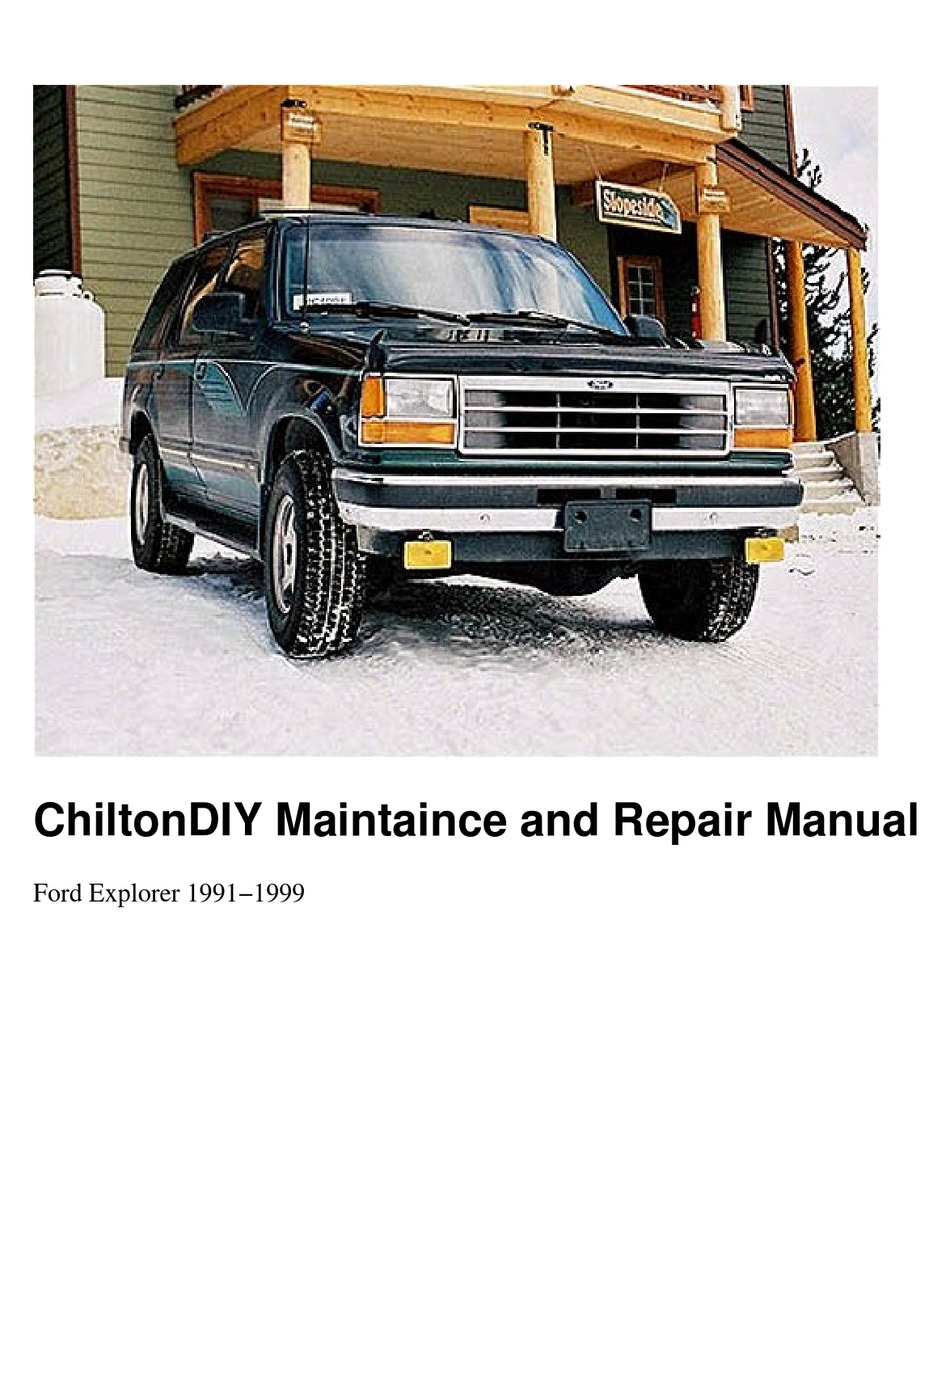 Ford Ranger Maintaince And Repair Manual Pdf Download Manualslib